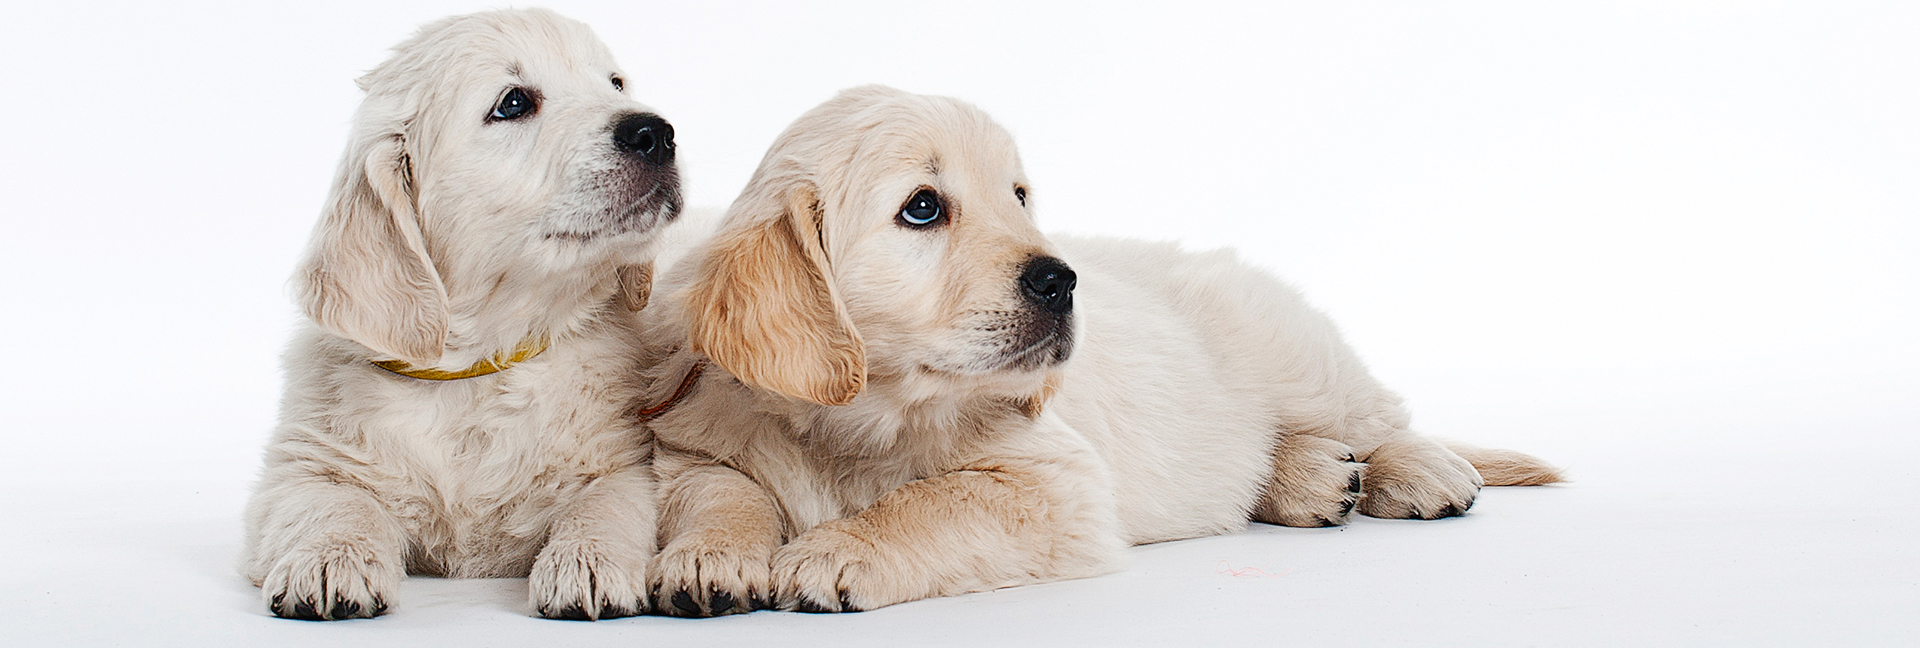 2 Golden Retriever puppies